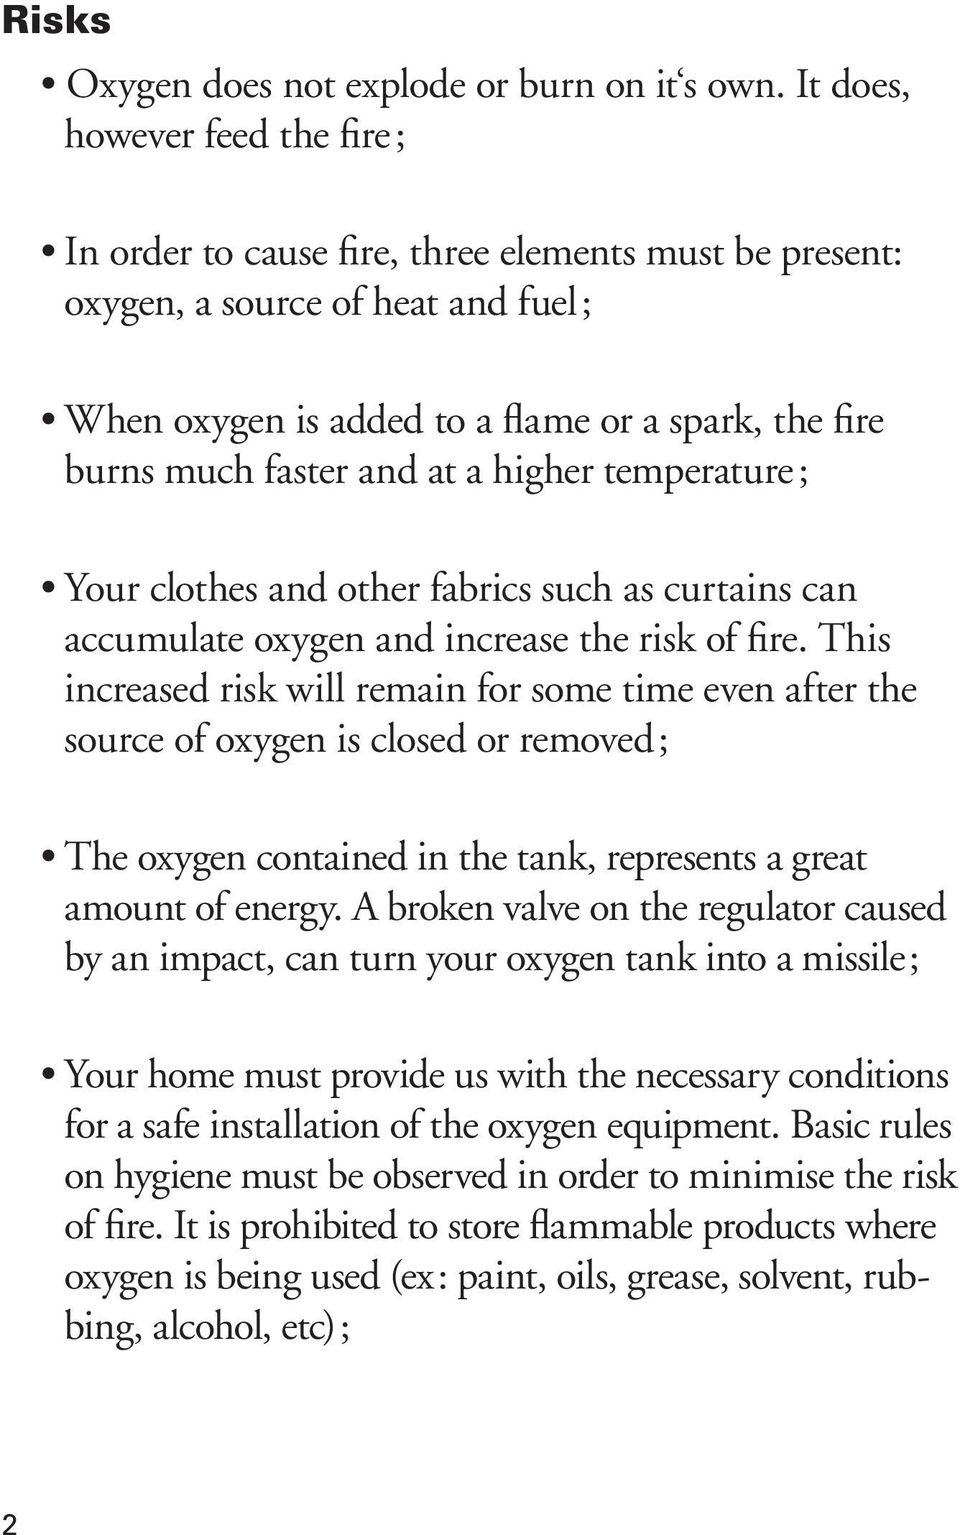 at a higher temperature ; Your clothes and other fabrics such as curtains can accumulate oxygen and increase the risk of fire.